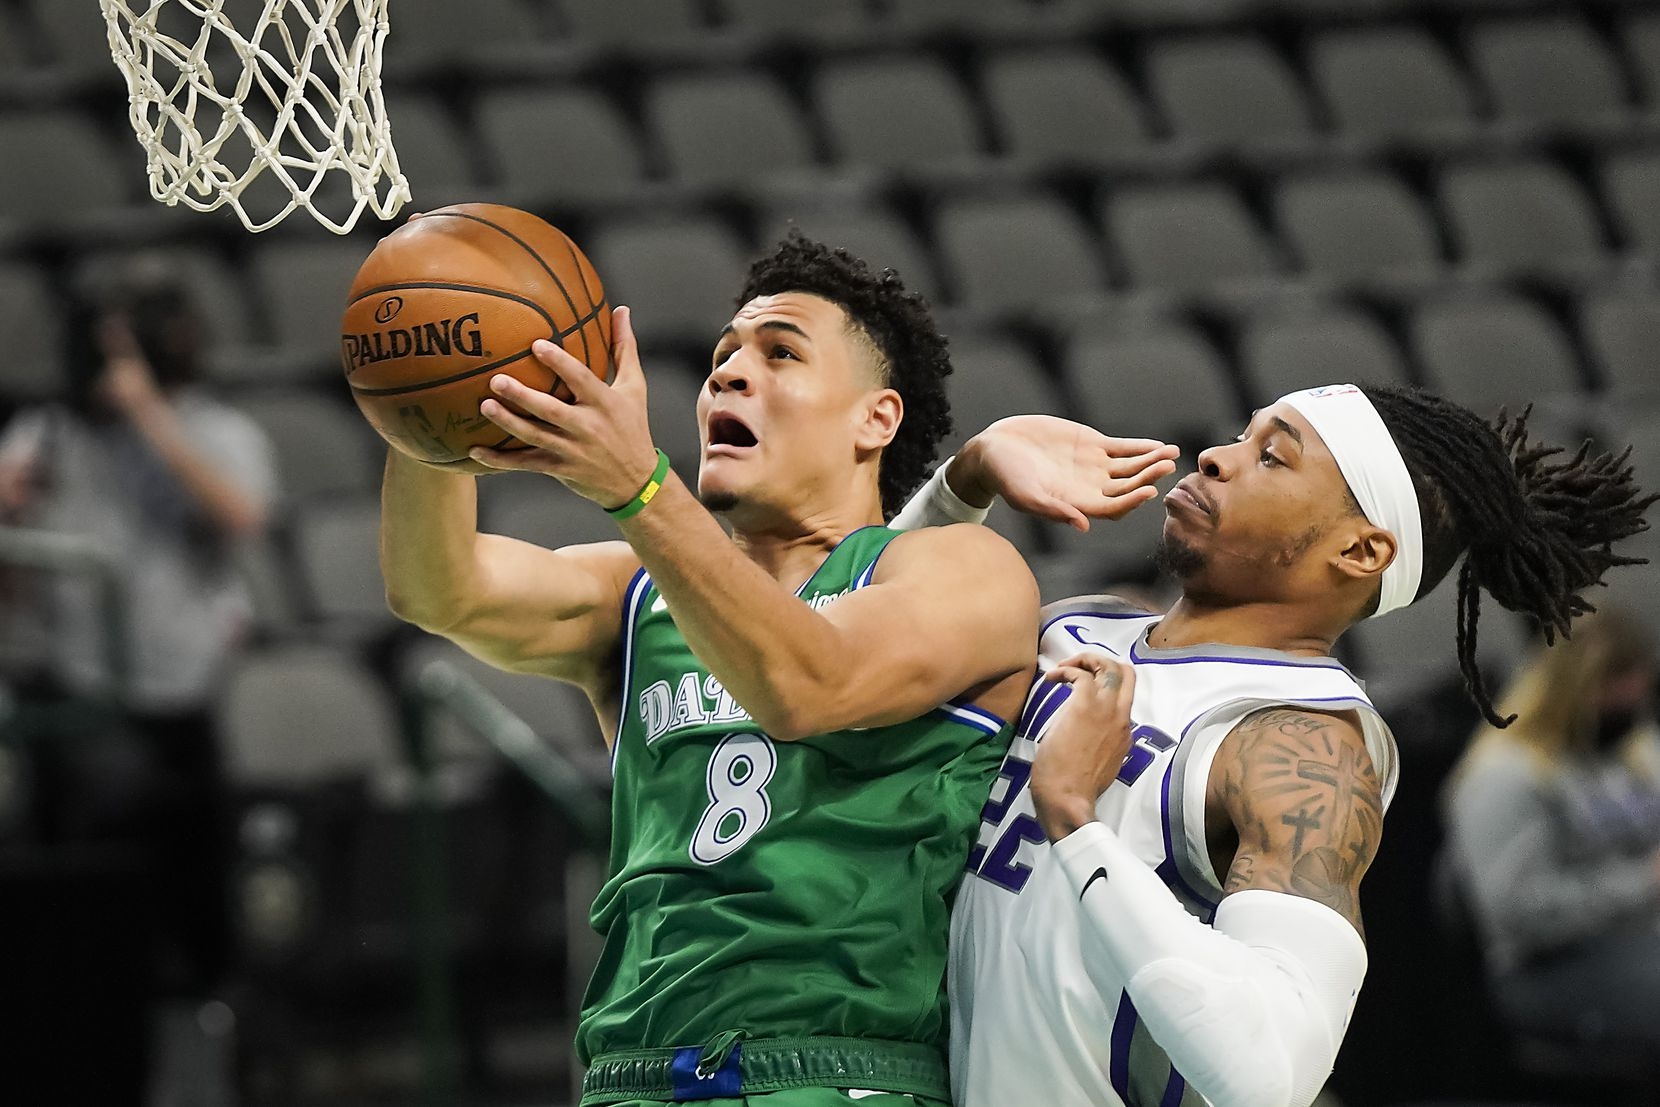 Dallas Mavericks guard Josh Green (8) drives to the basket past Sacramento Kings center Richaun Holmes (22) during the first half of an NBA basketball game at American Airlines Center on Sunday, May 2, 2021, in Dallas.